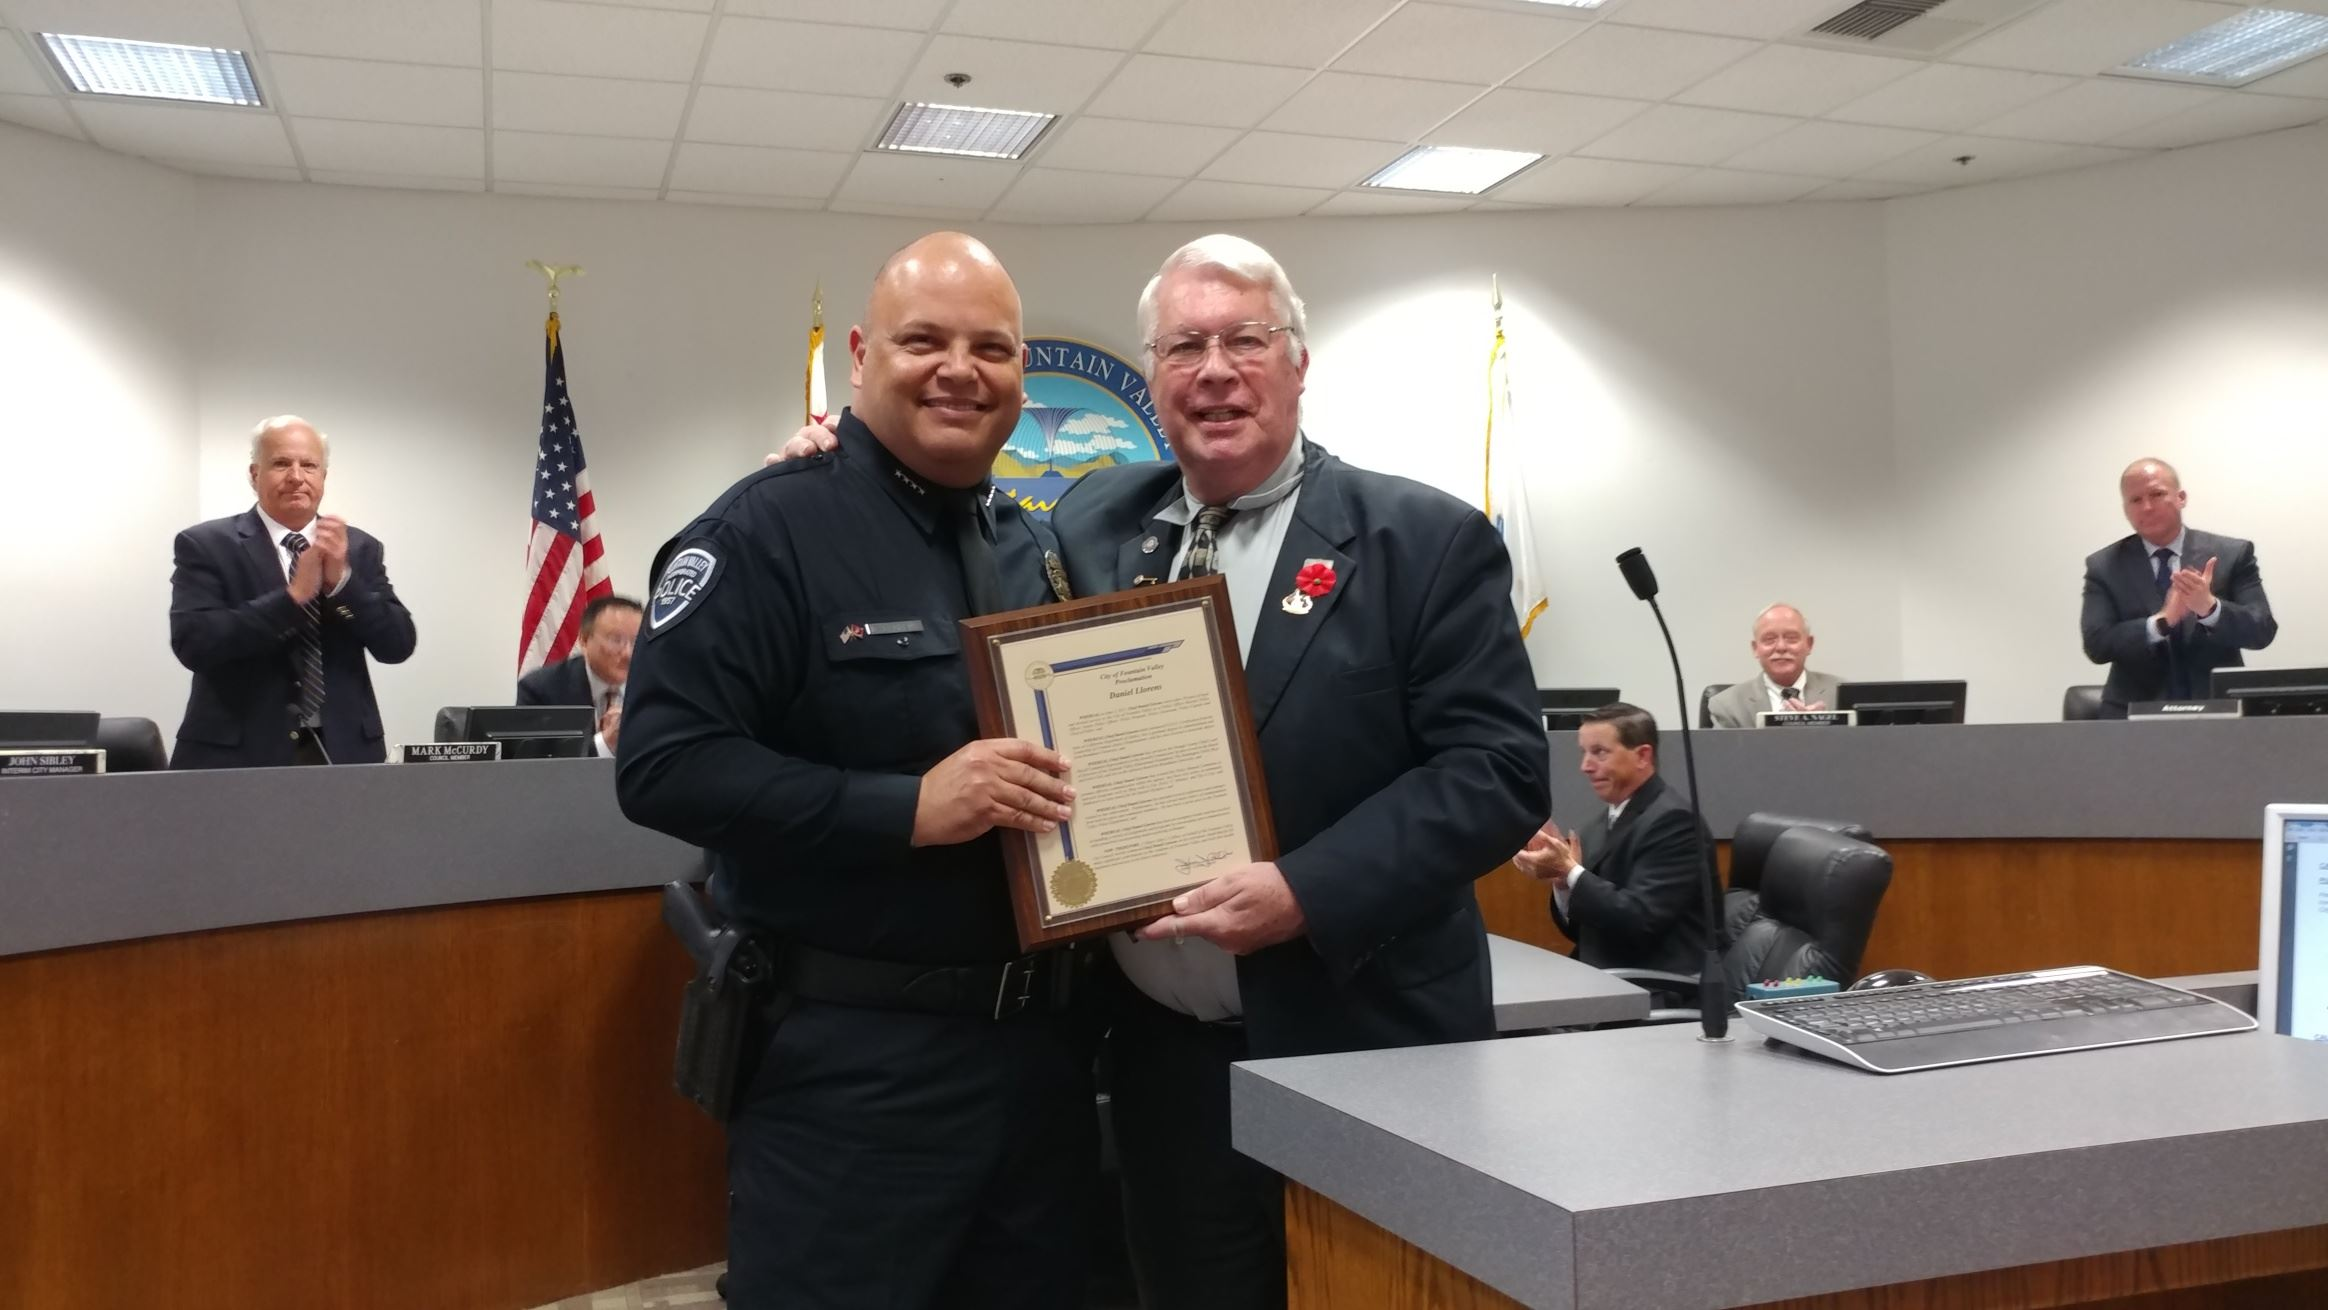 Proclamation Recognizing Police Chief Dan Llorens for His Service to the City of Fountain Valley